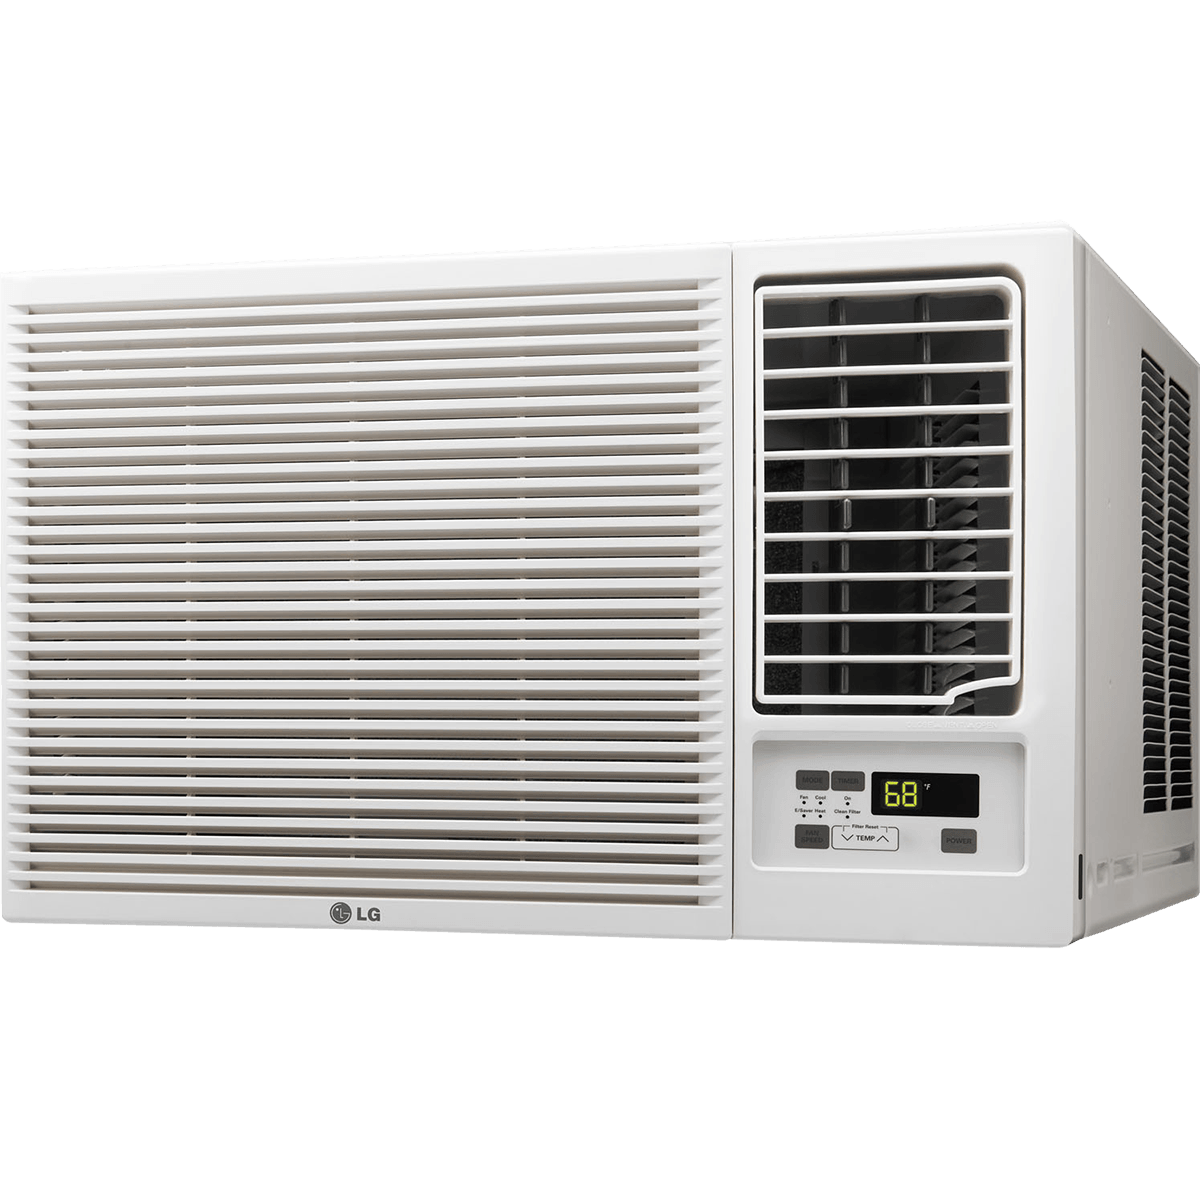 Air Conditioner Png Image Best Window Air Conditioner Air Conditioner Heater Wall Air Conditioner